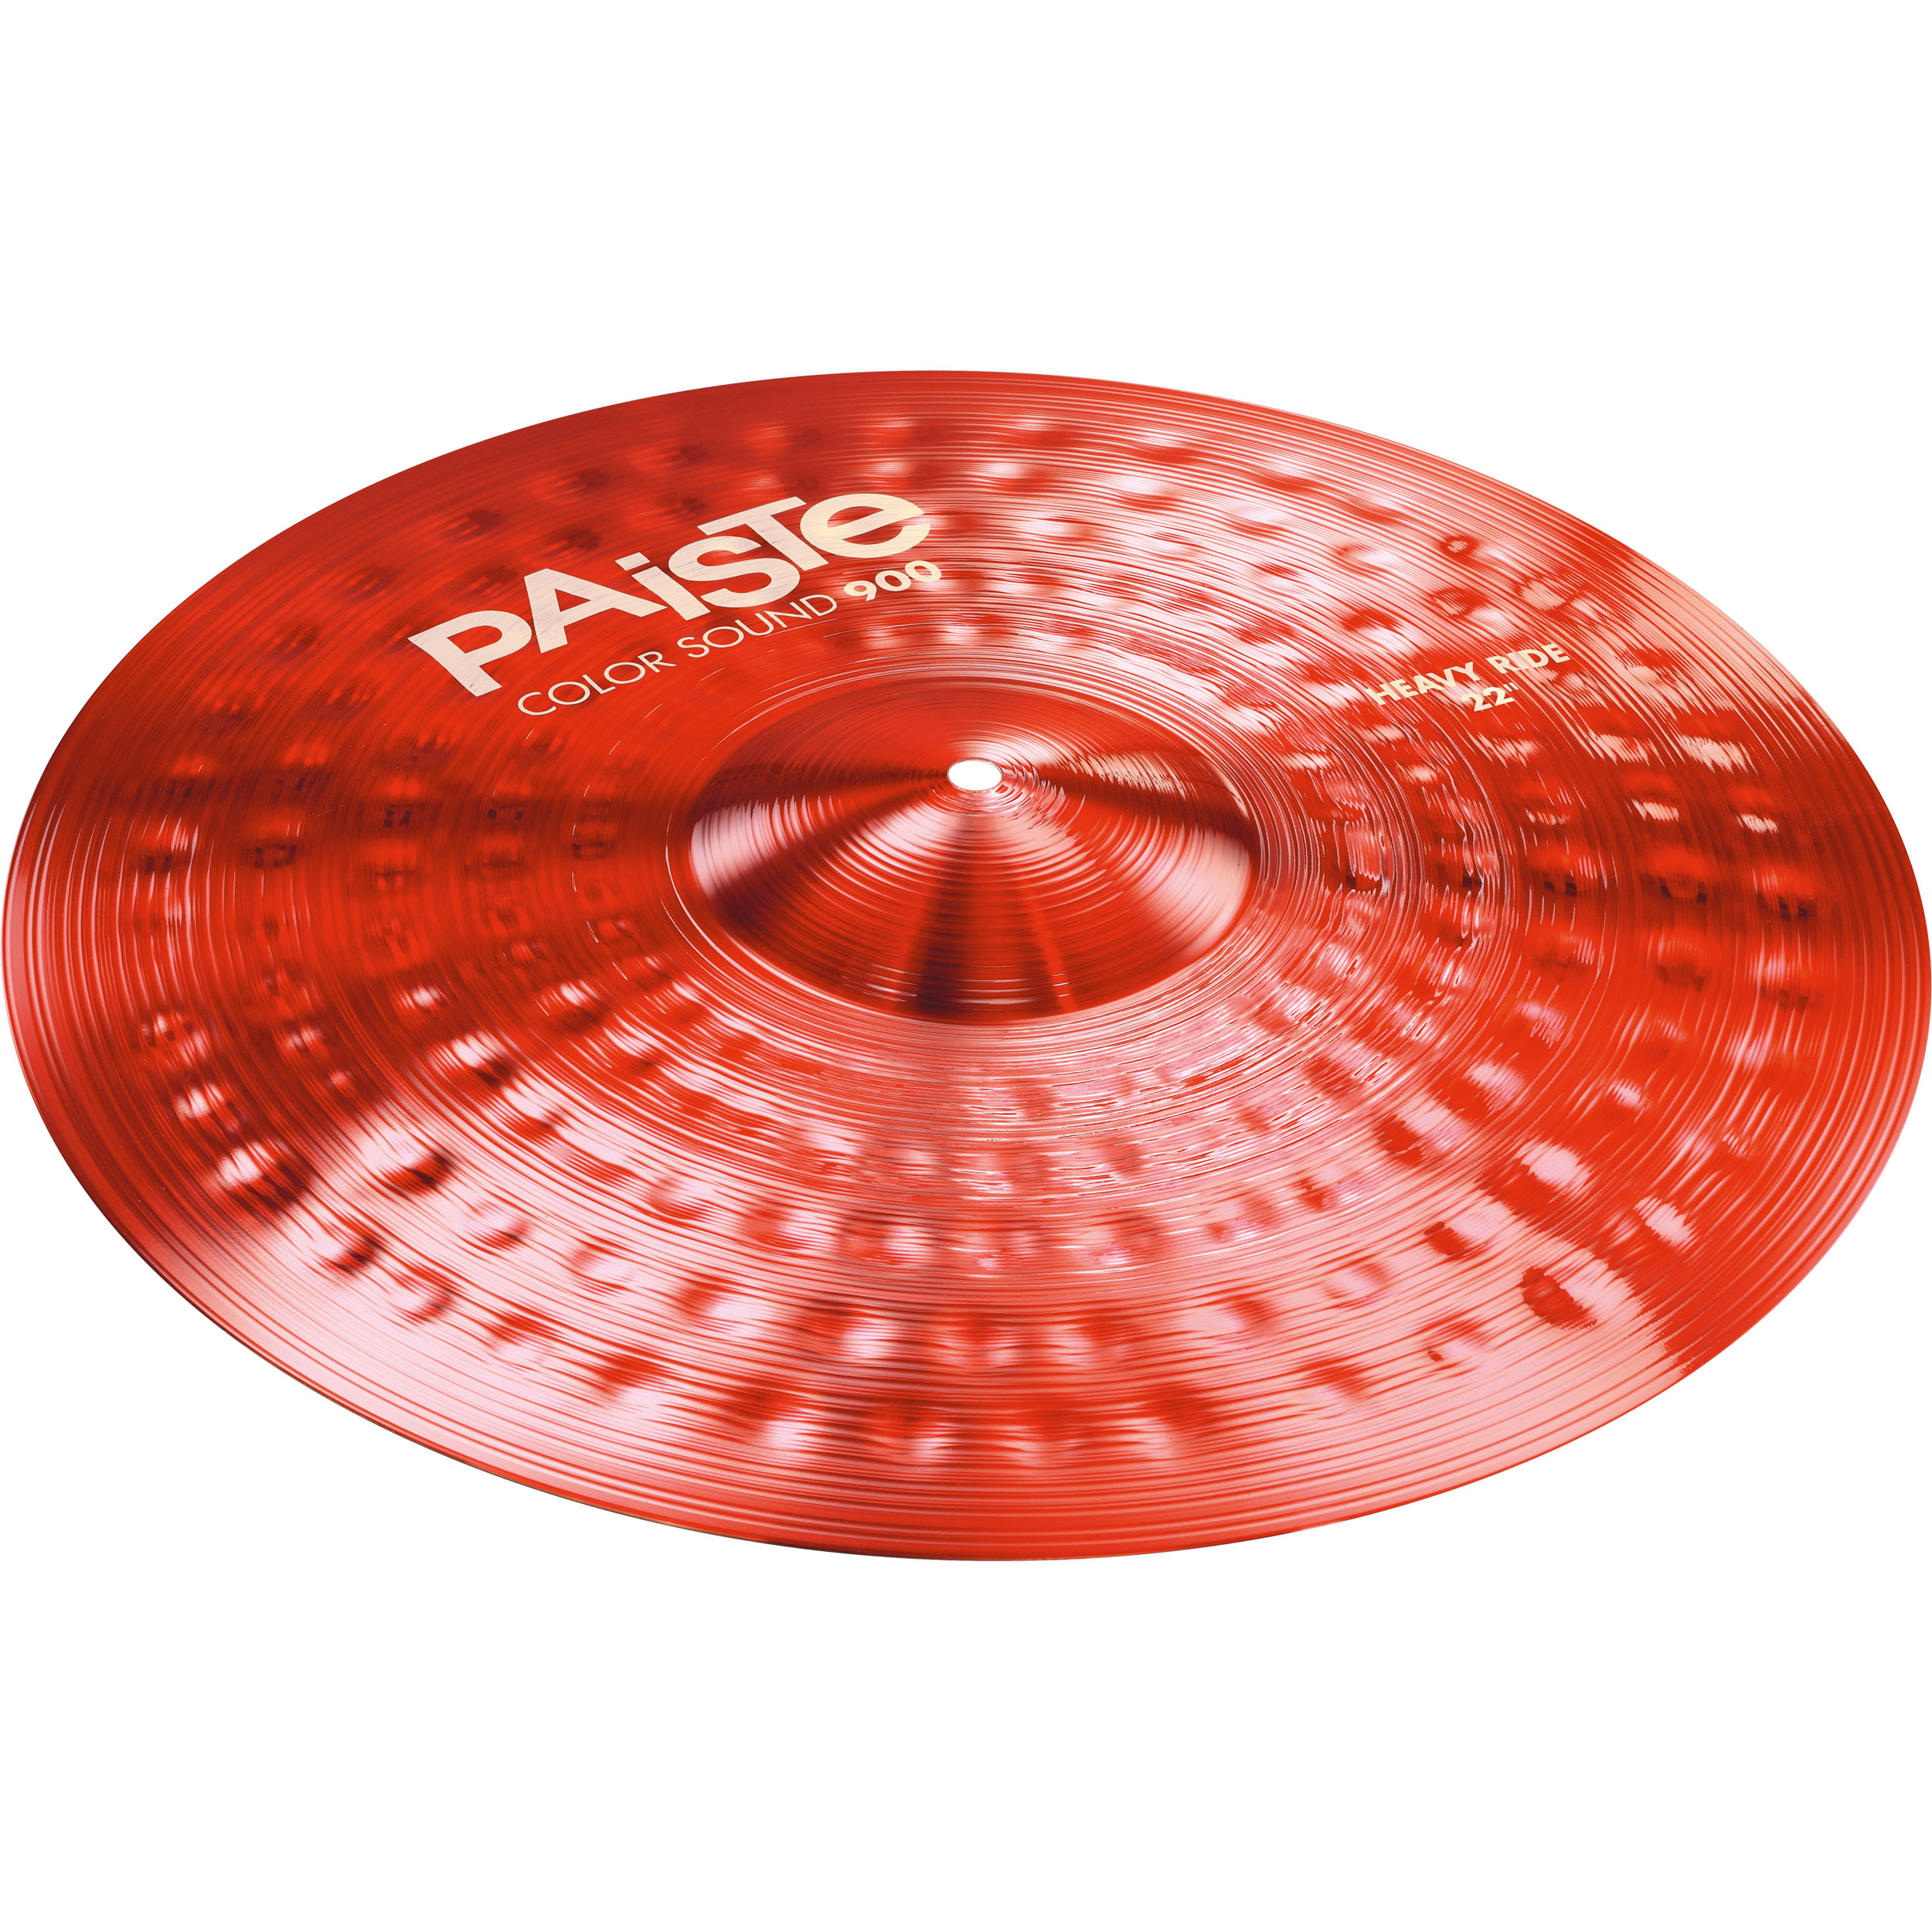 """Paiste 22"""" Color Sound 900 Red Heavy Ride Cymbal"""